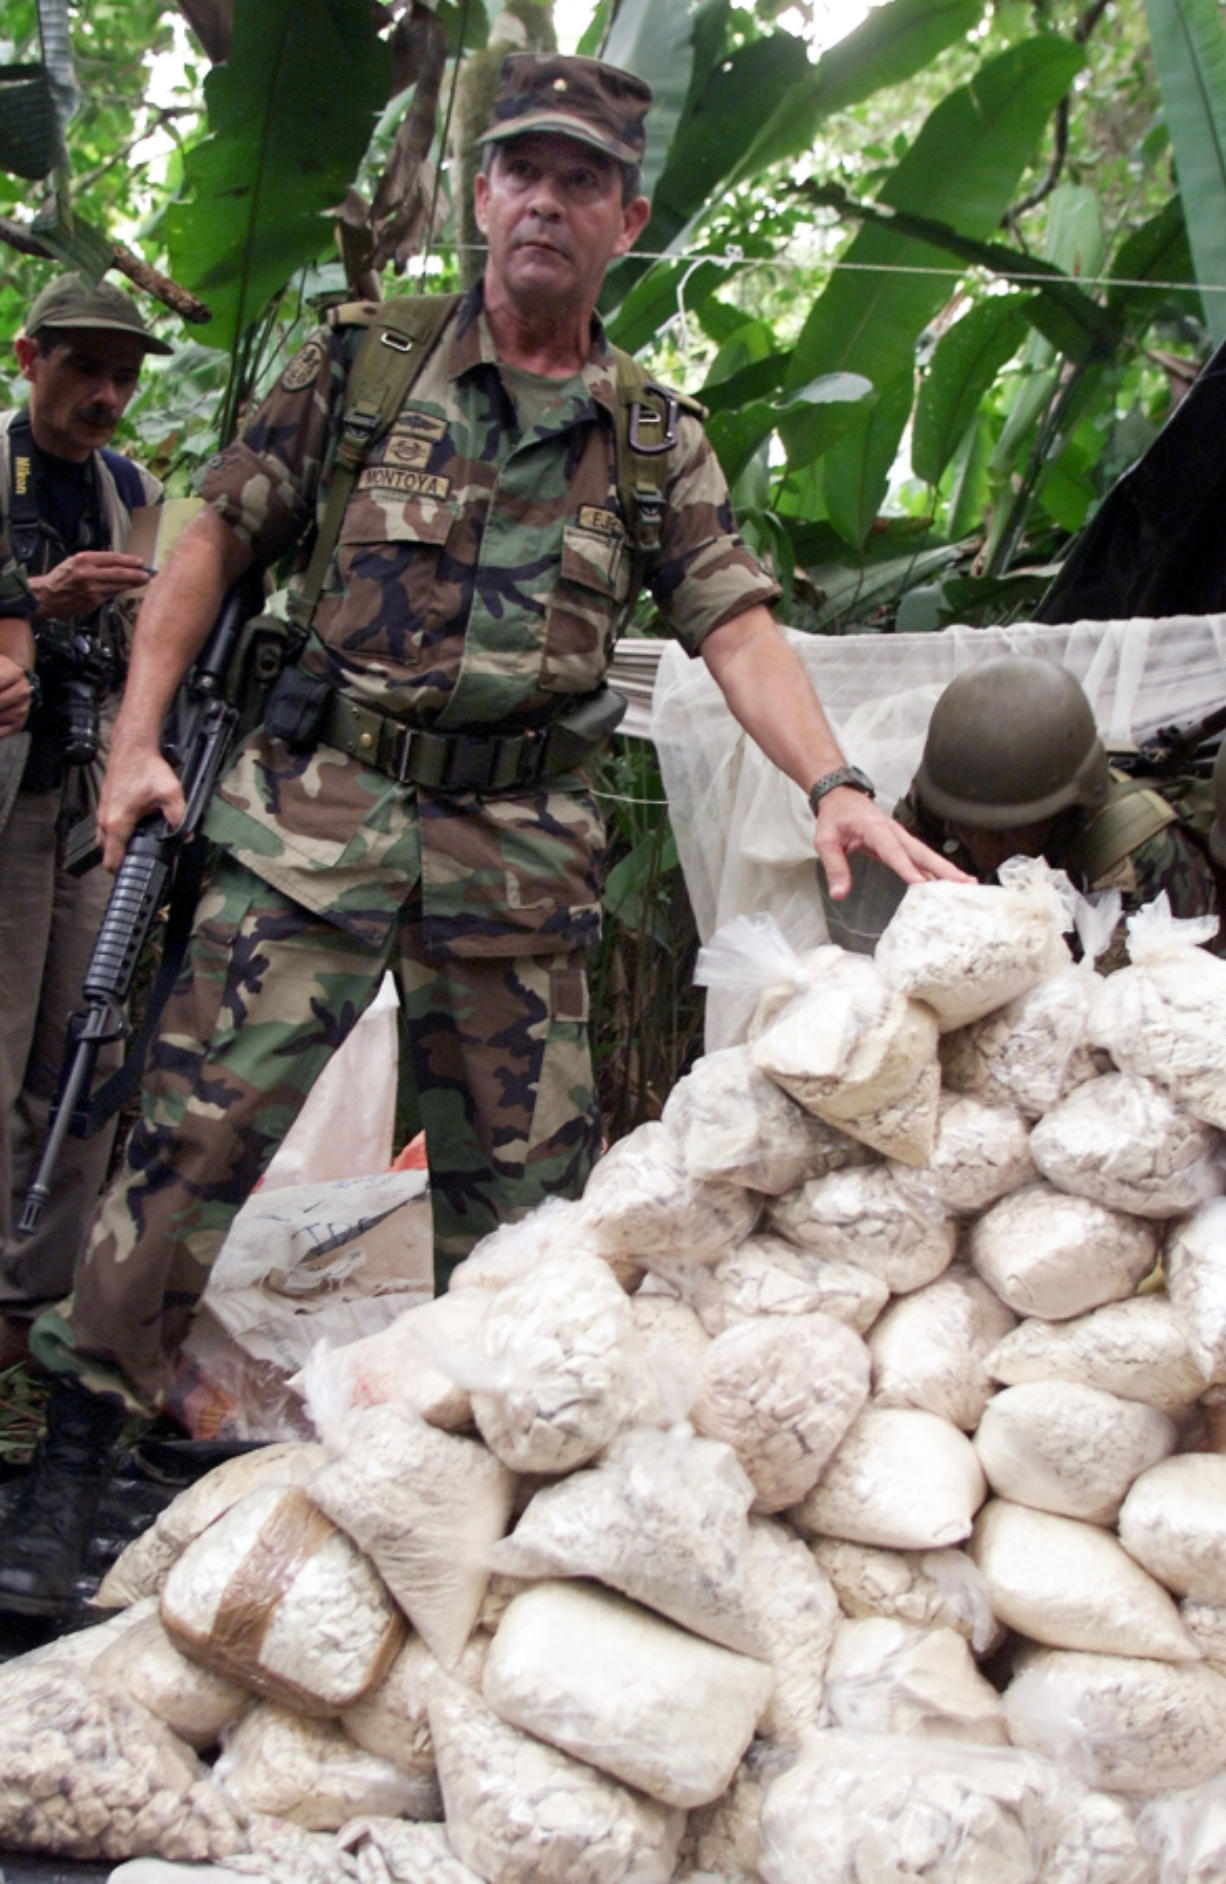 In February 2001, Gen. Mario Montoya of the U.S.-backed military unit in charge of counter-narcotics efforts in Colombia's southern coca-growing region stands next to a pile of coca bags seized at a cocaine laboratory near Puerto Asis, Colombia.